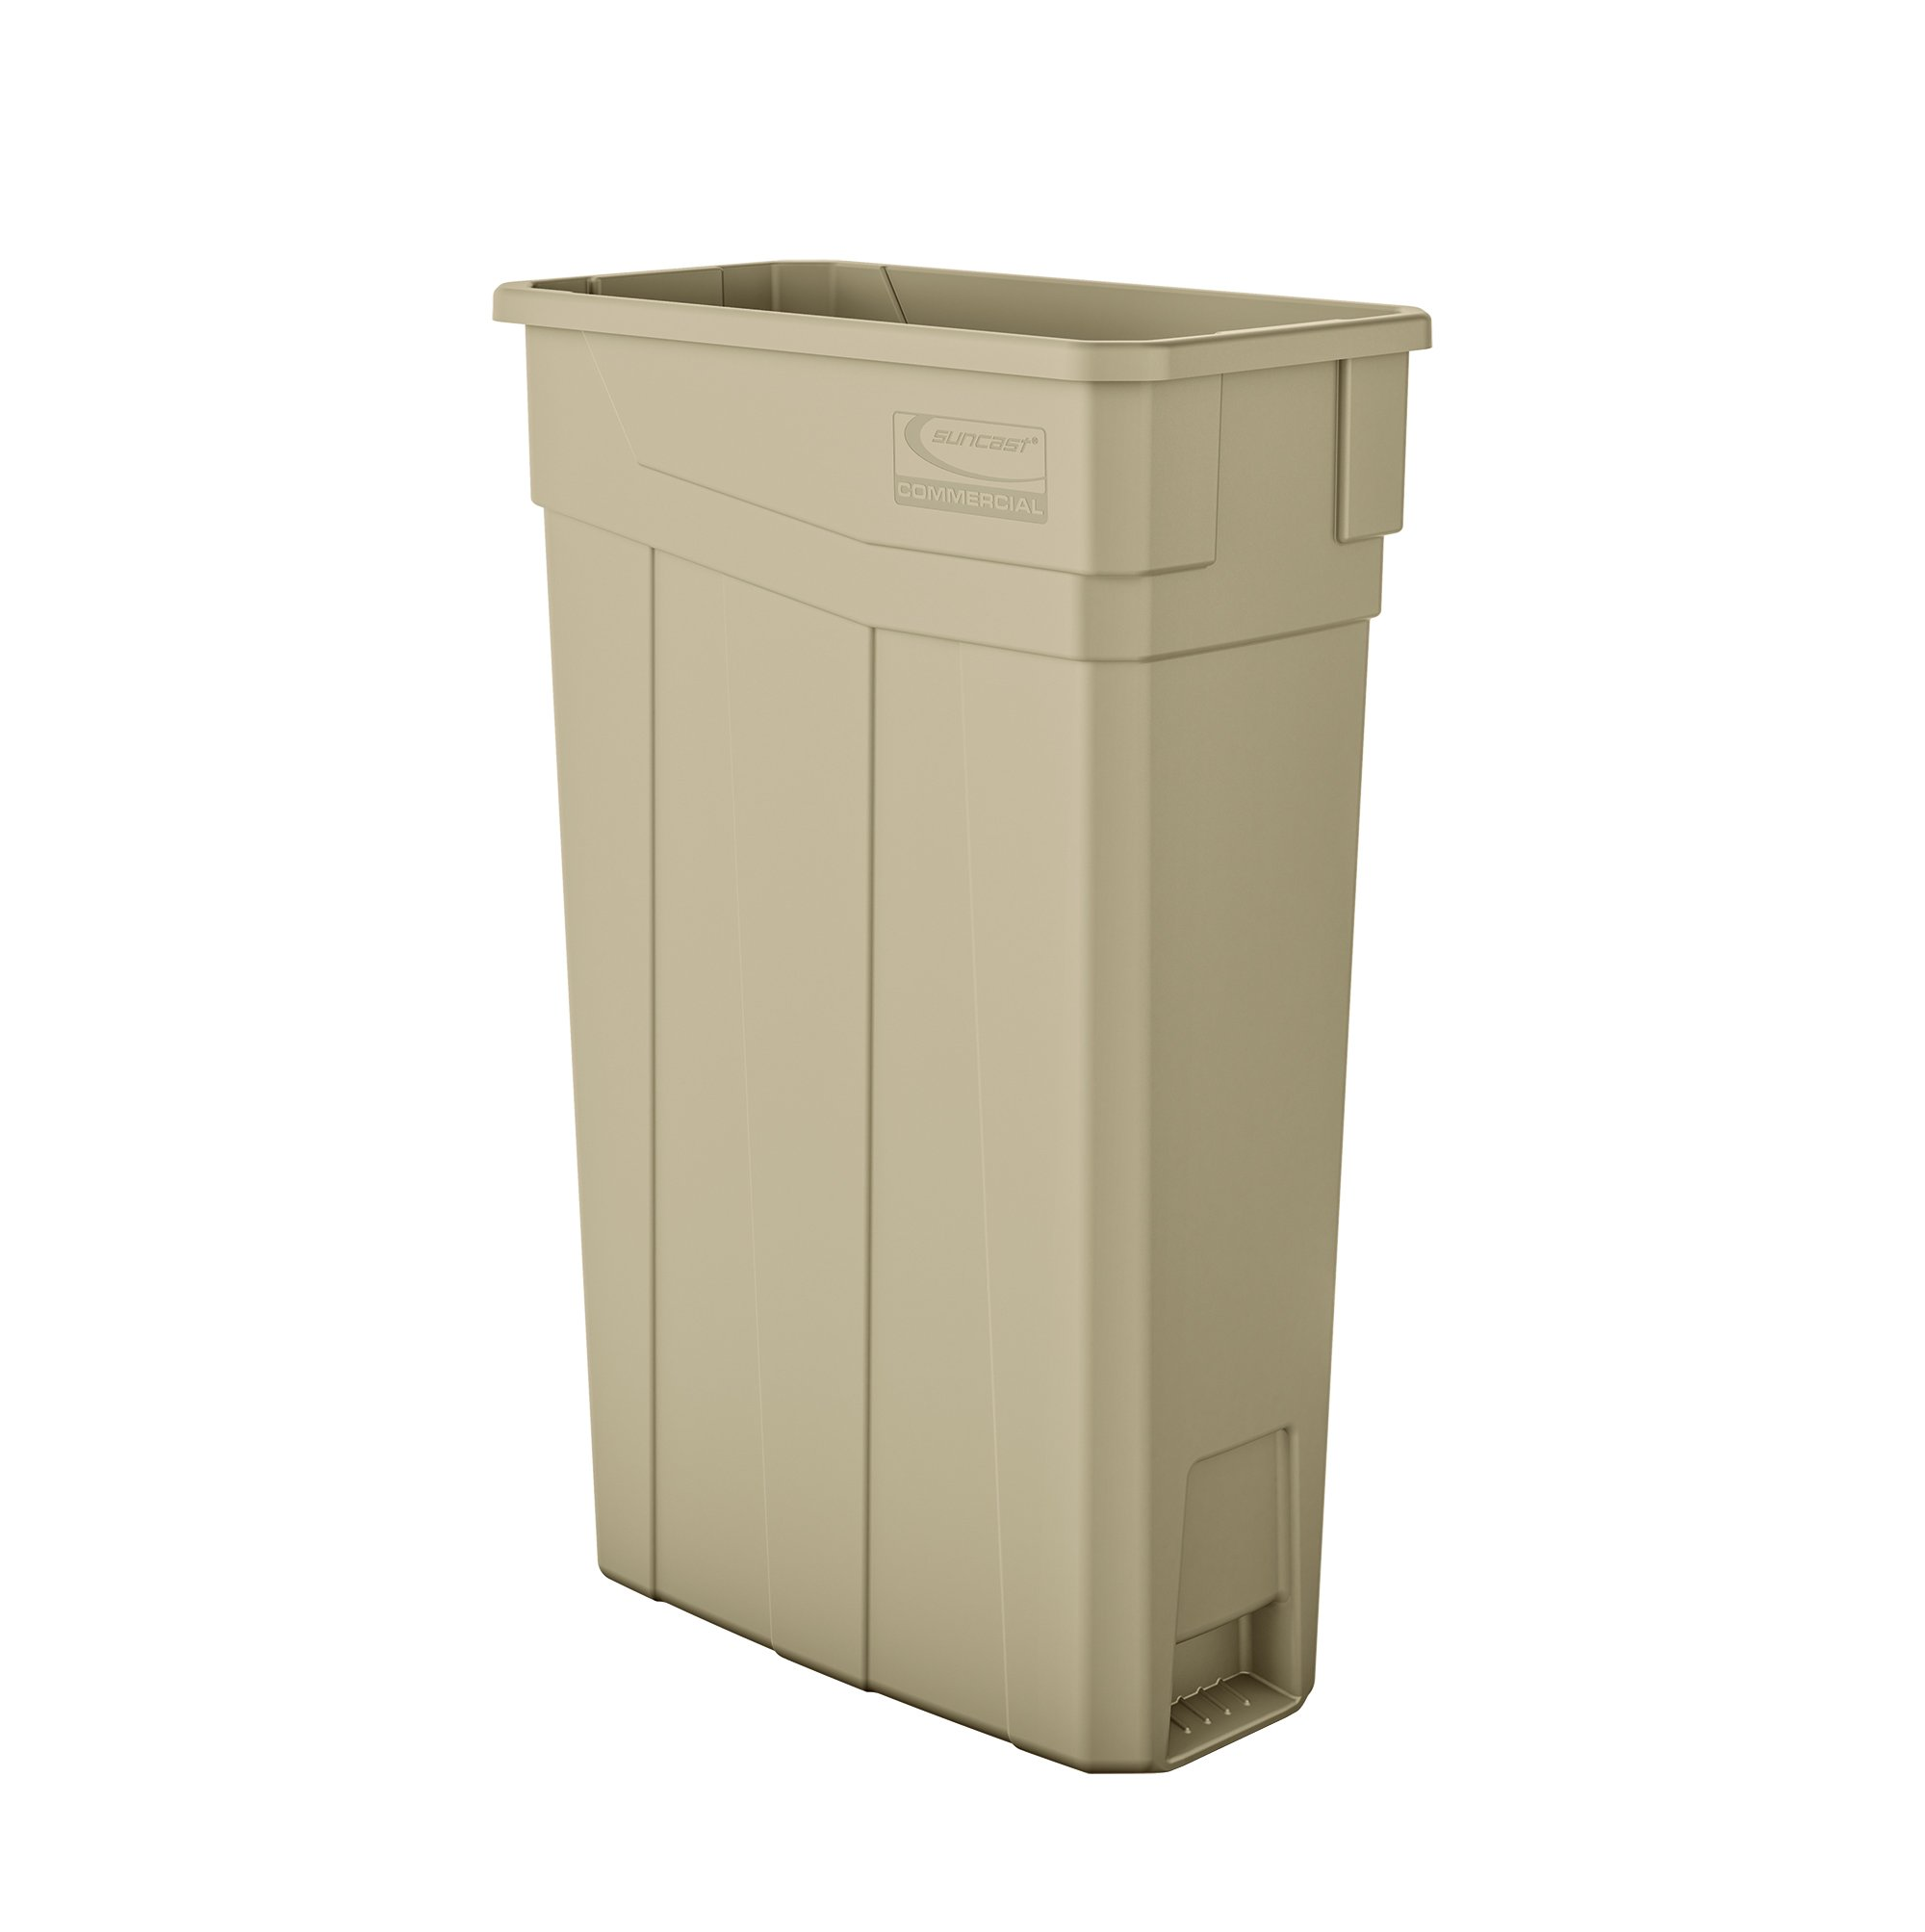 Suncast Commercial TCN2030S Narrow Trash Can Without Handles, 30.00'' Height x 11.08'' Width, 23 gal Capacity, Sand by Suncast Commercial